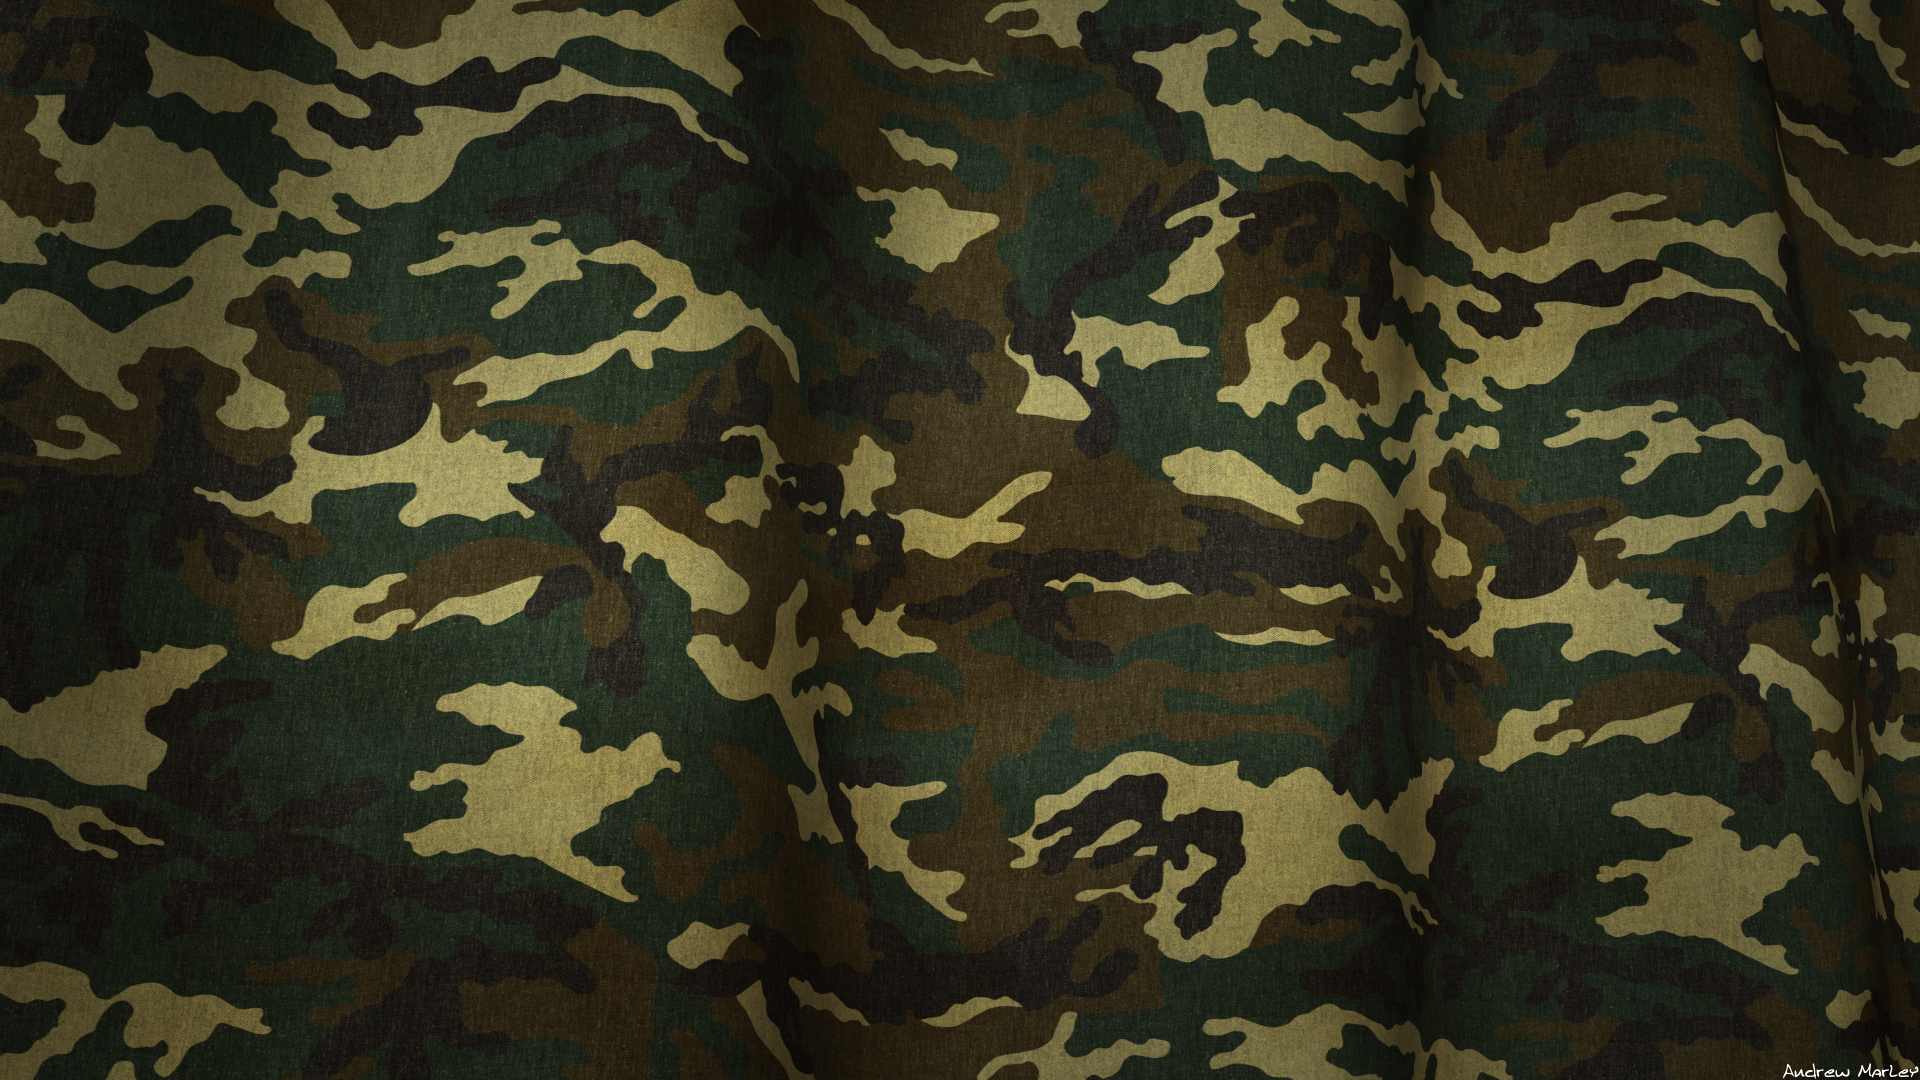 Camouflage Wallpaper and Border at The Camo Shop Buy these 1920x1080